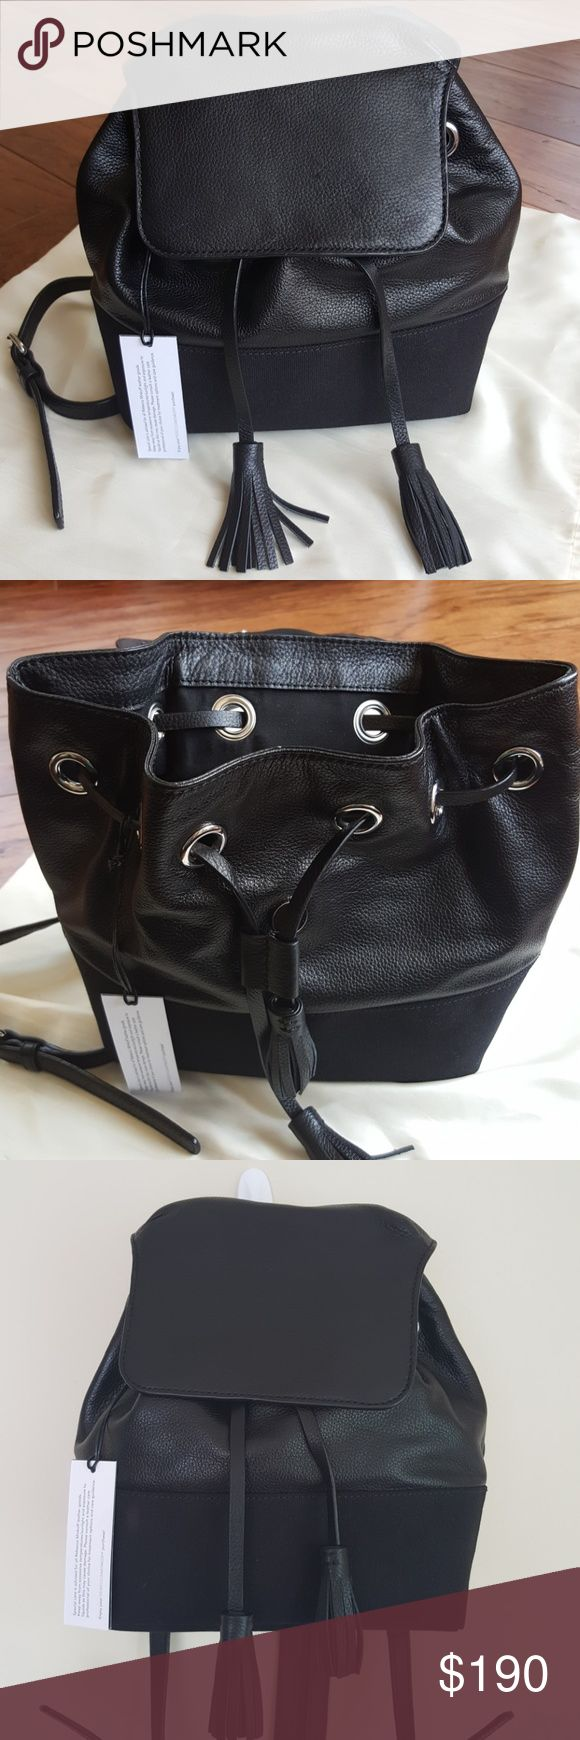 """Rebecca Minkoff """"Mansfield"""" Backpack NWT, mixed media, leather/textile, small but very roomy, drawstring beneath magnetic flap closure, adjustable shoildee straps, straps cam convert from two to one strap usimg zipper detail, interior- double side pockets, zipper pocket and single wall pocket. Measurements: 10'h, 9'w, and 5'd, strap drop 14'. Couple of faint scratches on flap. No dust bag included. Rebecca Minkoff Bags Backpacks"""